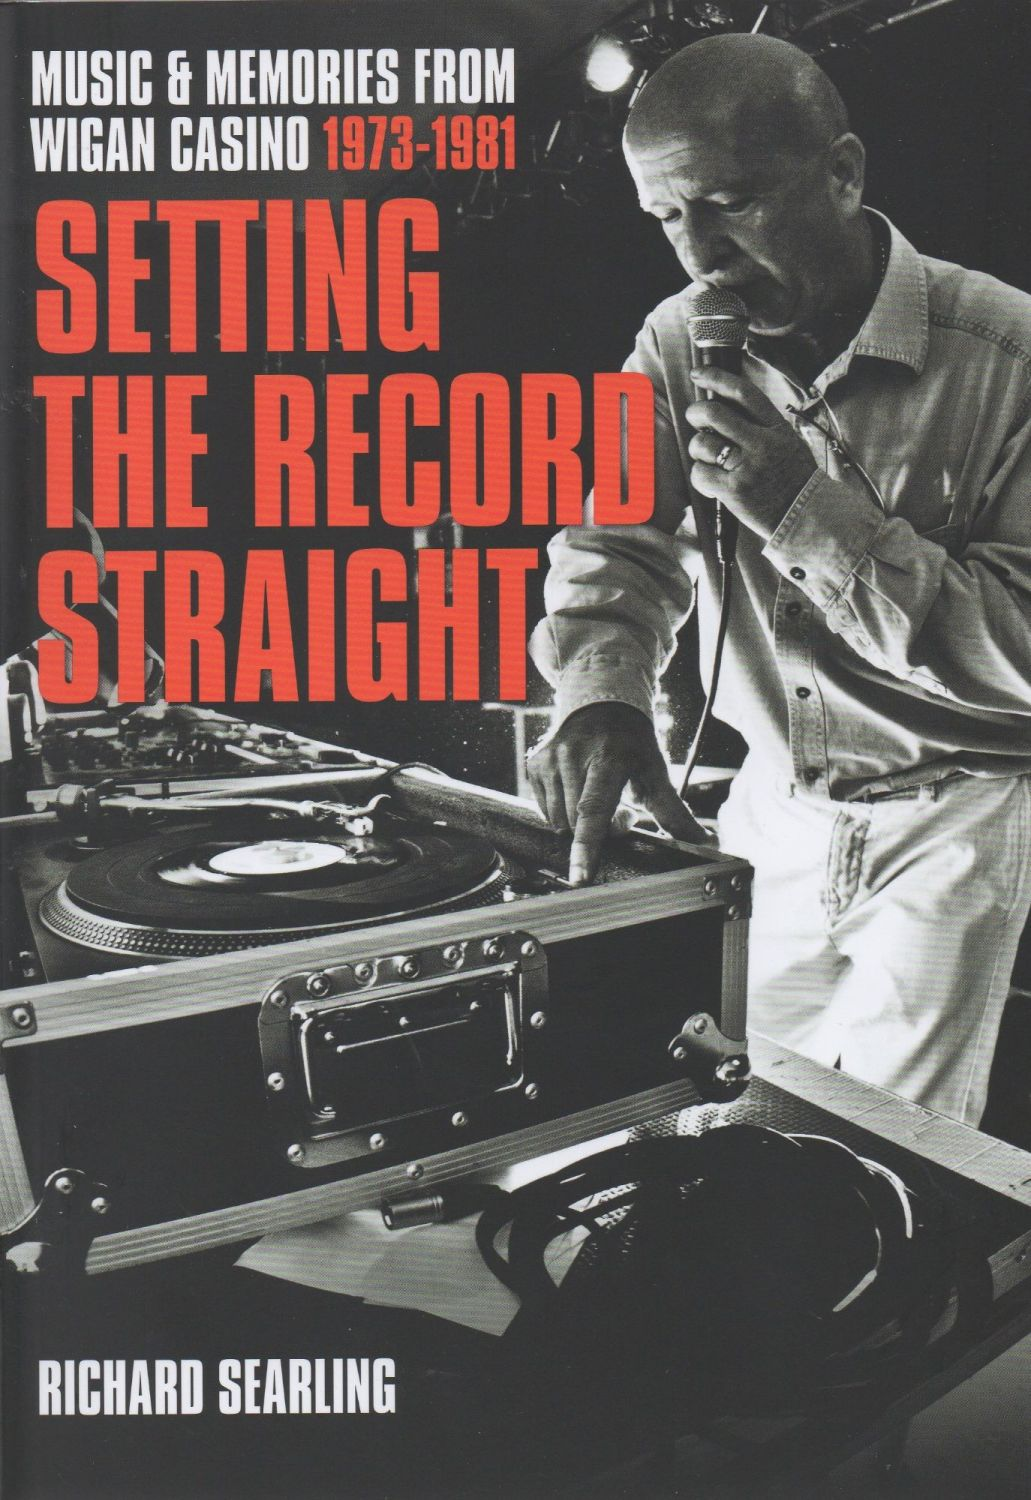 SETTING THE RECORD STRAIGHT - RICHARD SEARLING